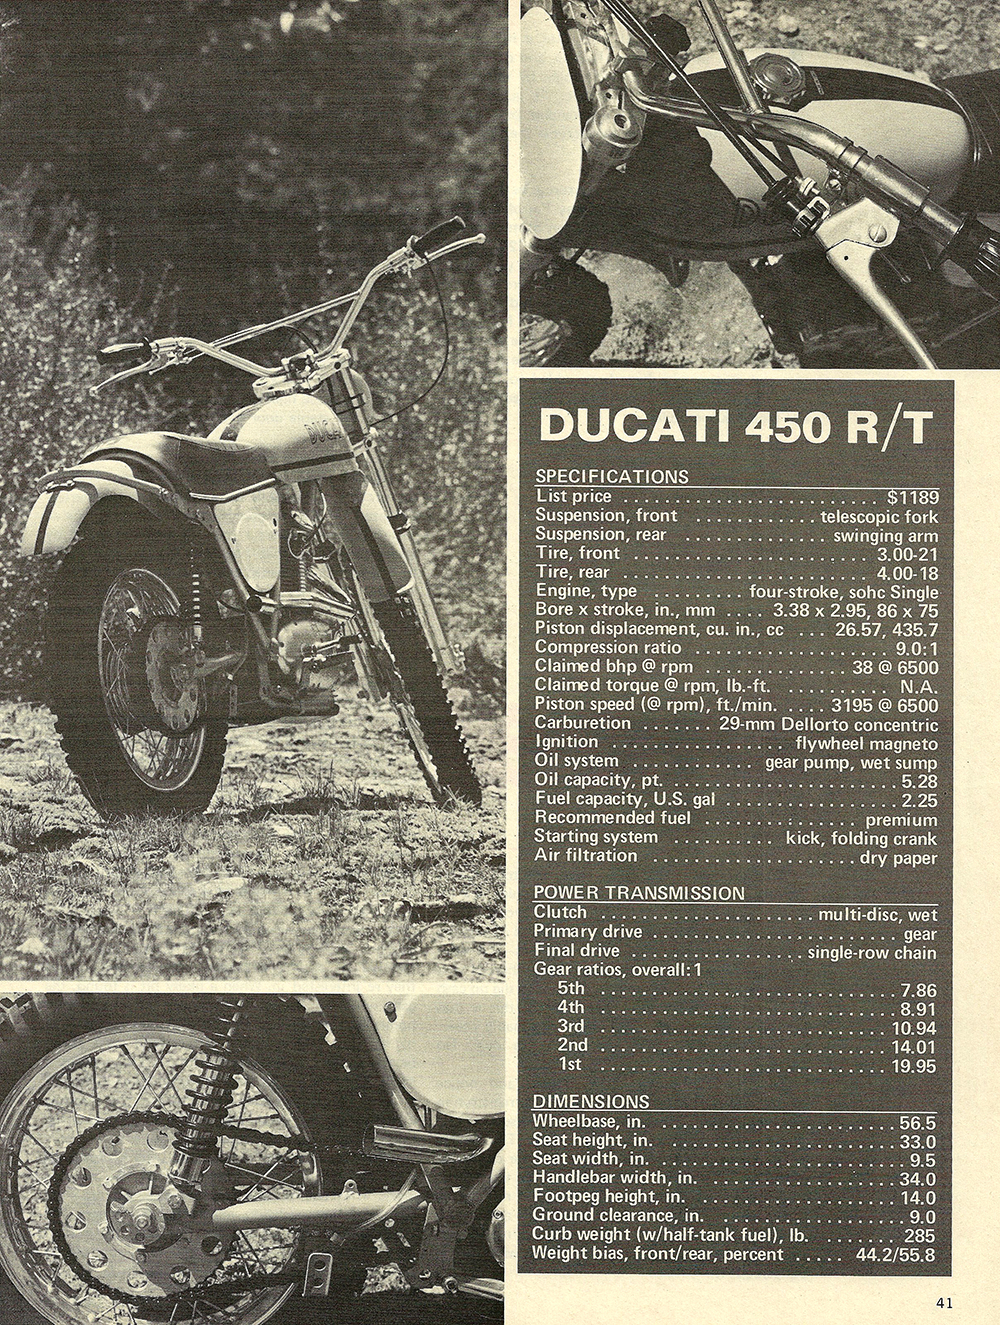 1971 Ducati 450 RT road test 04.jpg